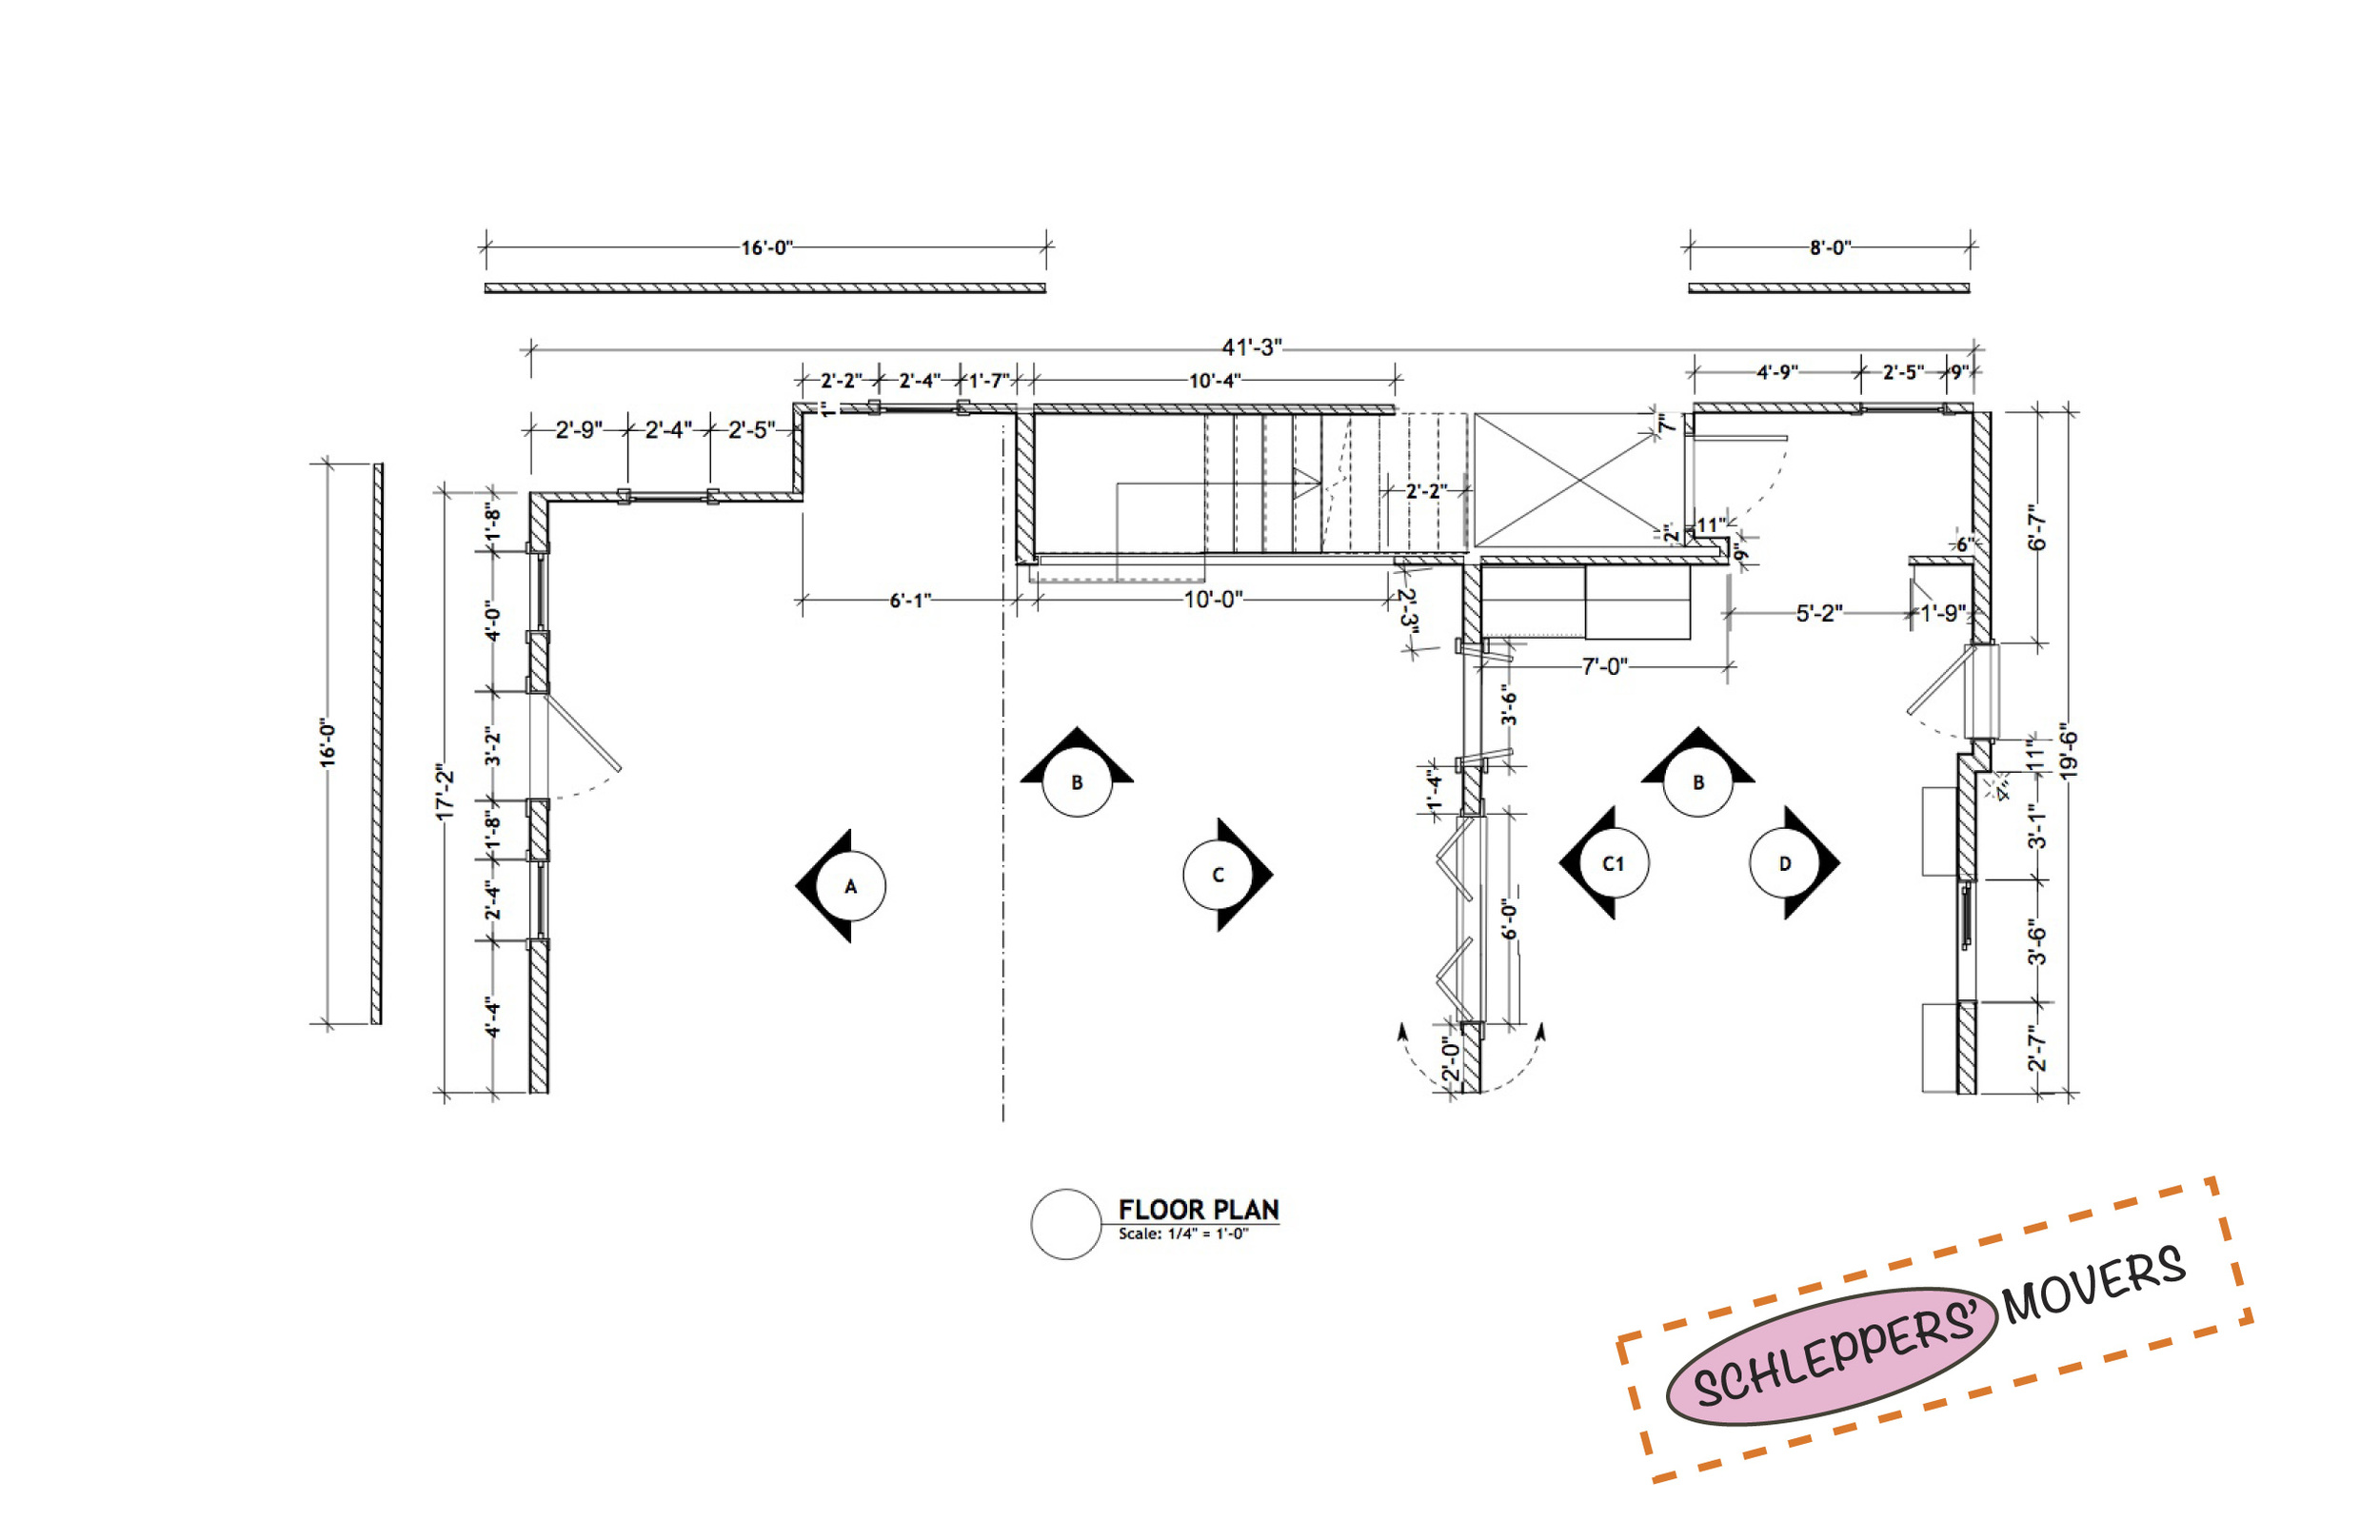 SCHLEPPERS MOVERS_A2_Plan View-01.jpg